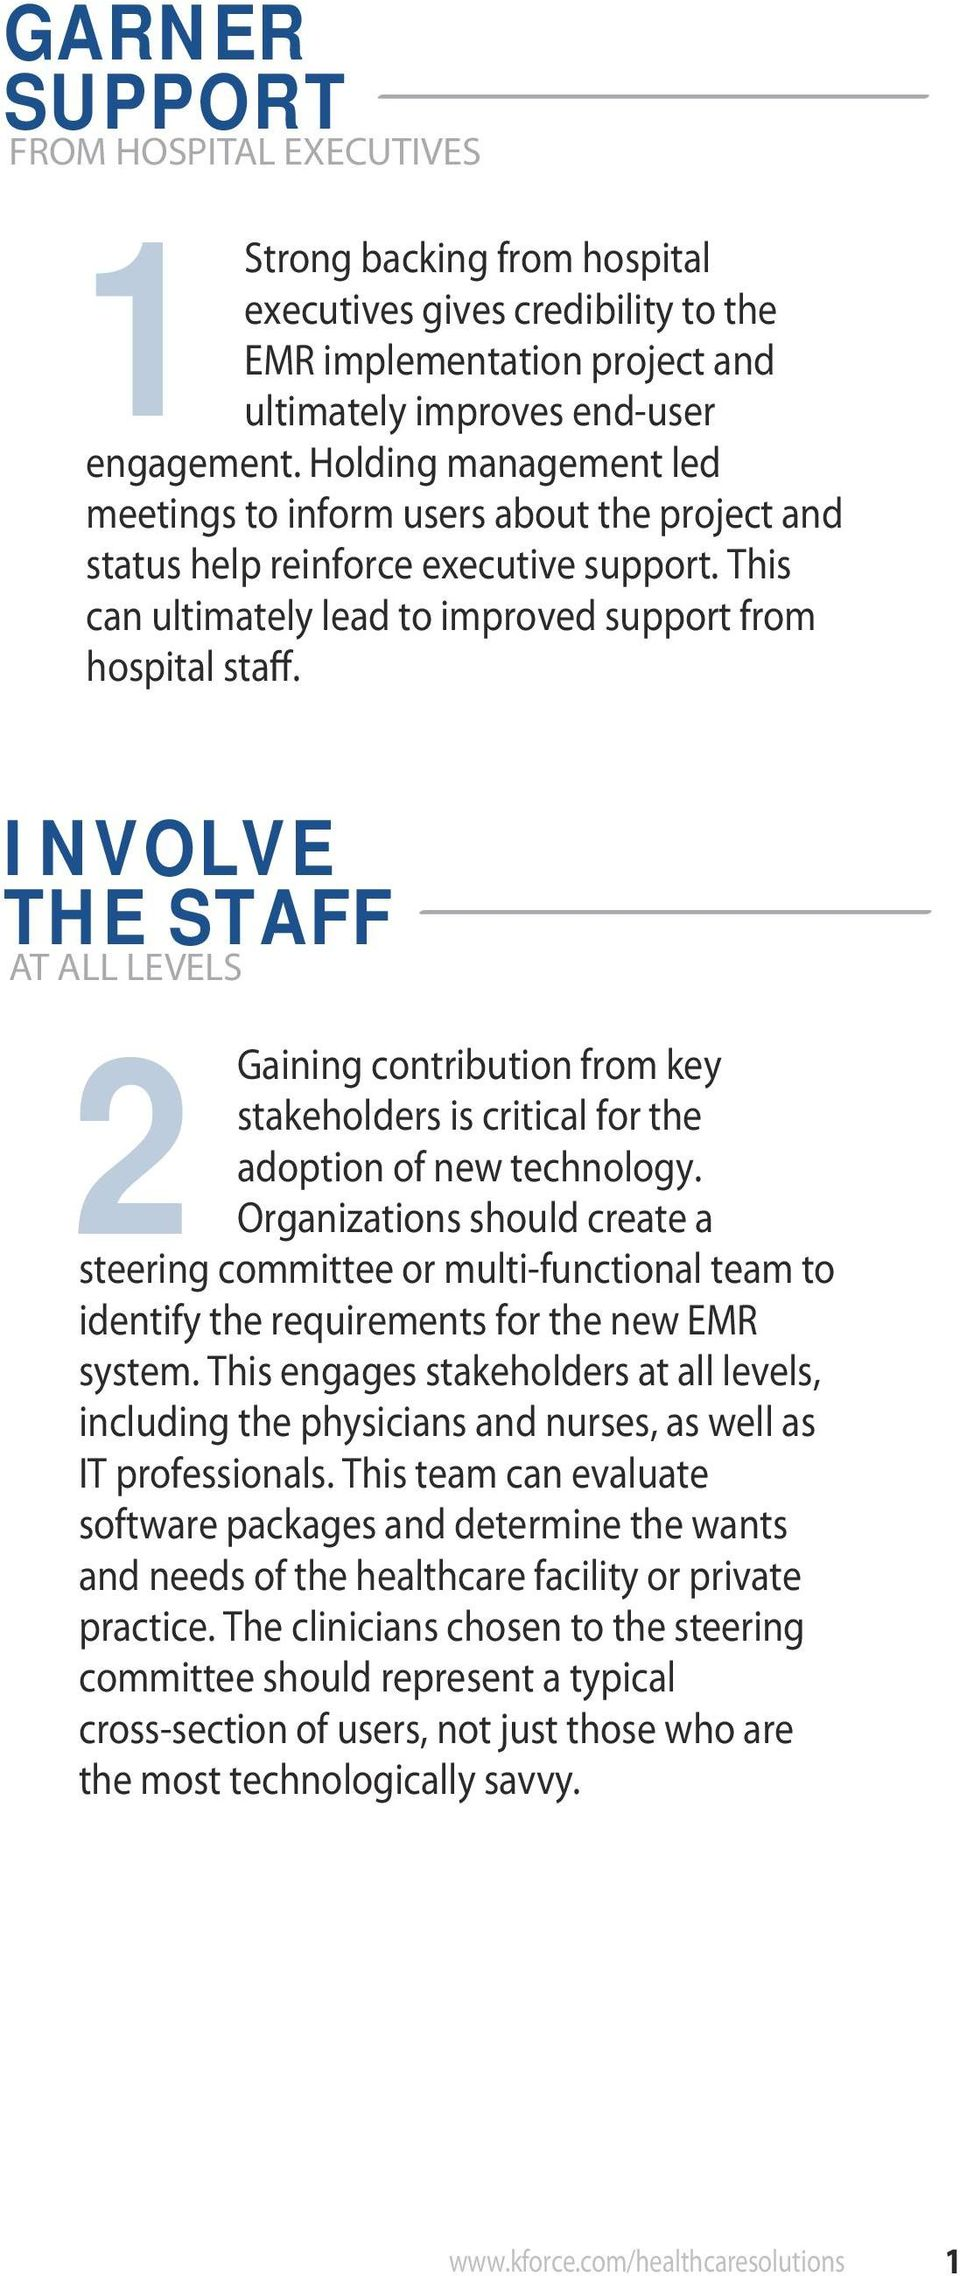 INVOLVE THE STAFF AT ALL LEVELS 2Gaining contribution from key stakeholders is critical for the adoption of new technology.